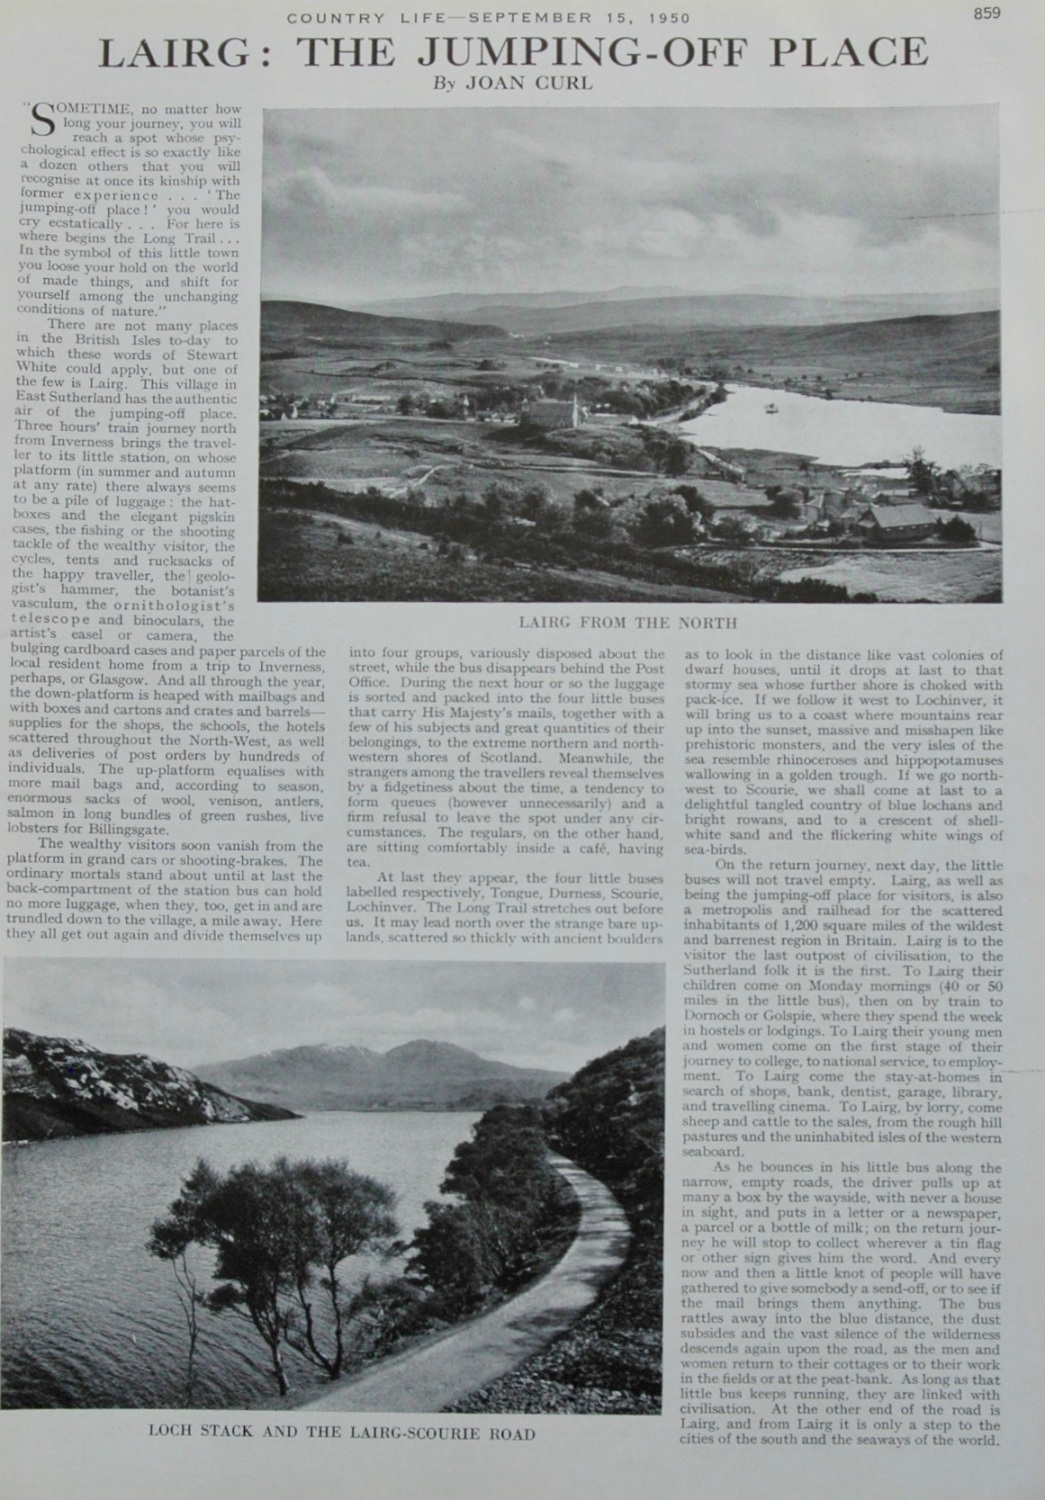 Lairg: The Jumping Off Place